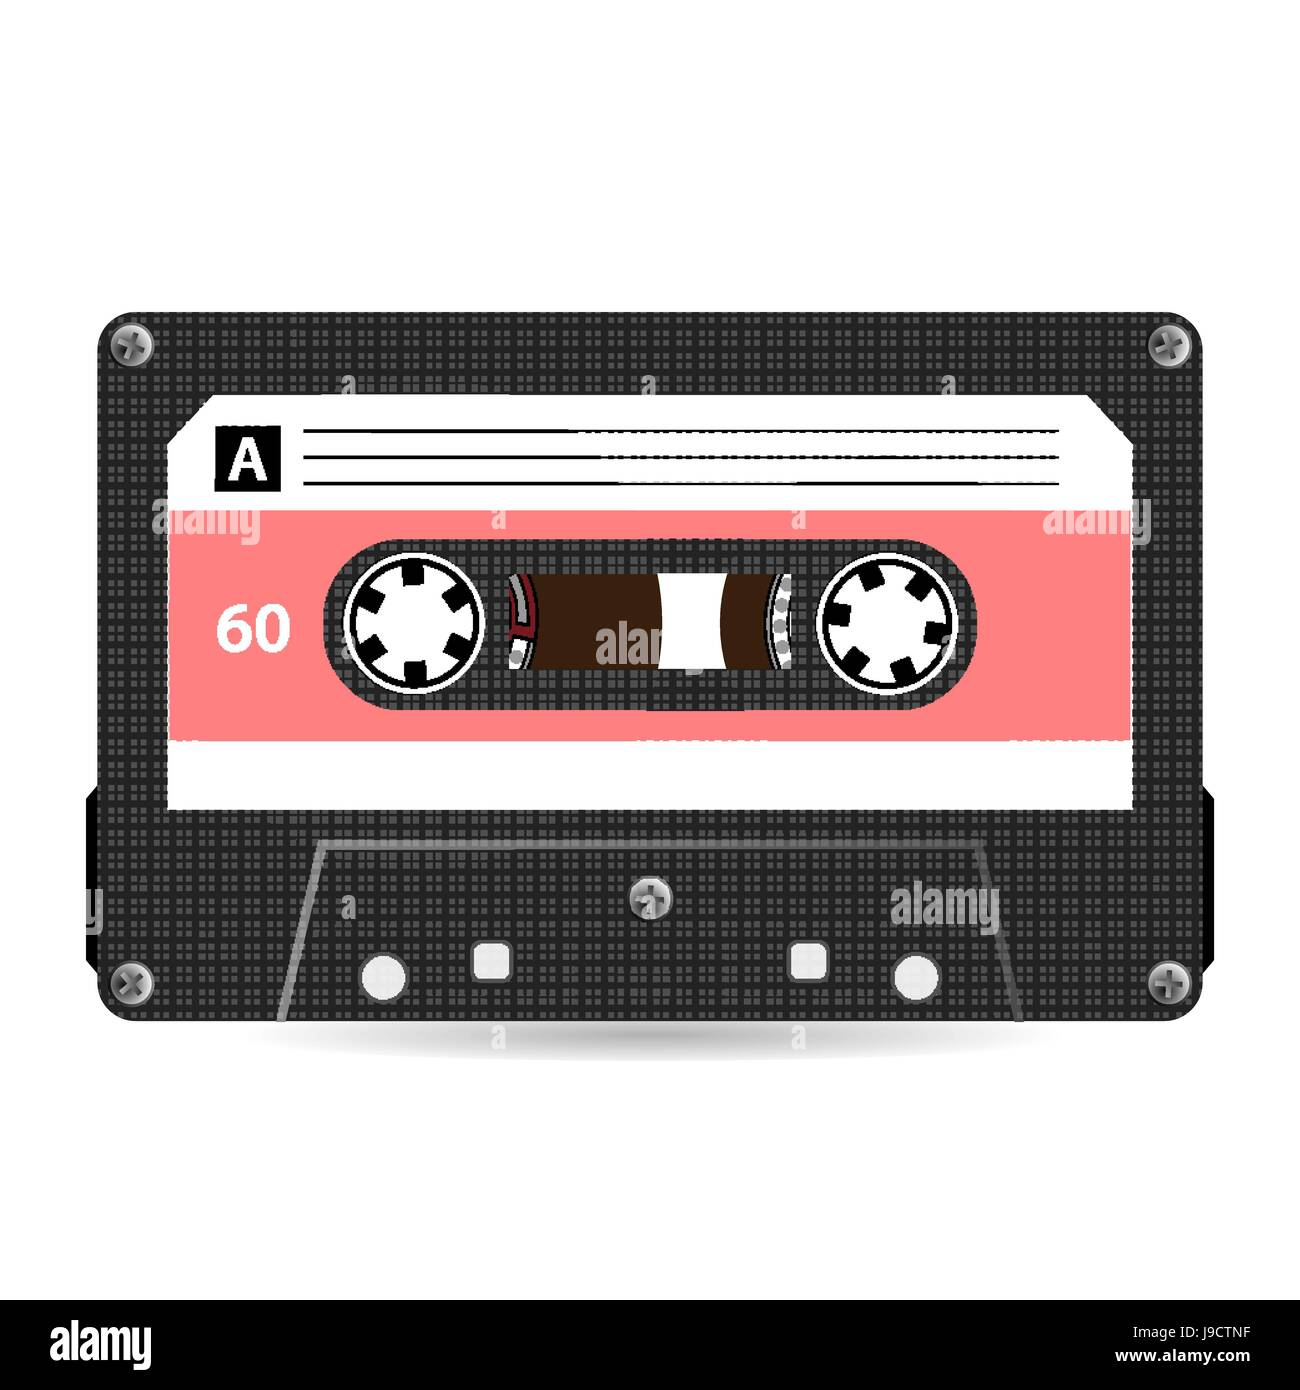 Retro Audio Cassette Vector. Plastic Audio Cassette Tape. Old Technology, Realistic Design Illustration. Isolated - Stock Image